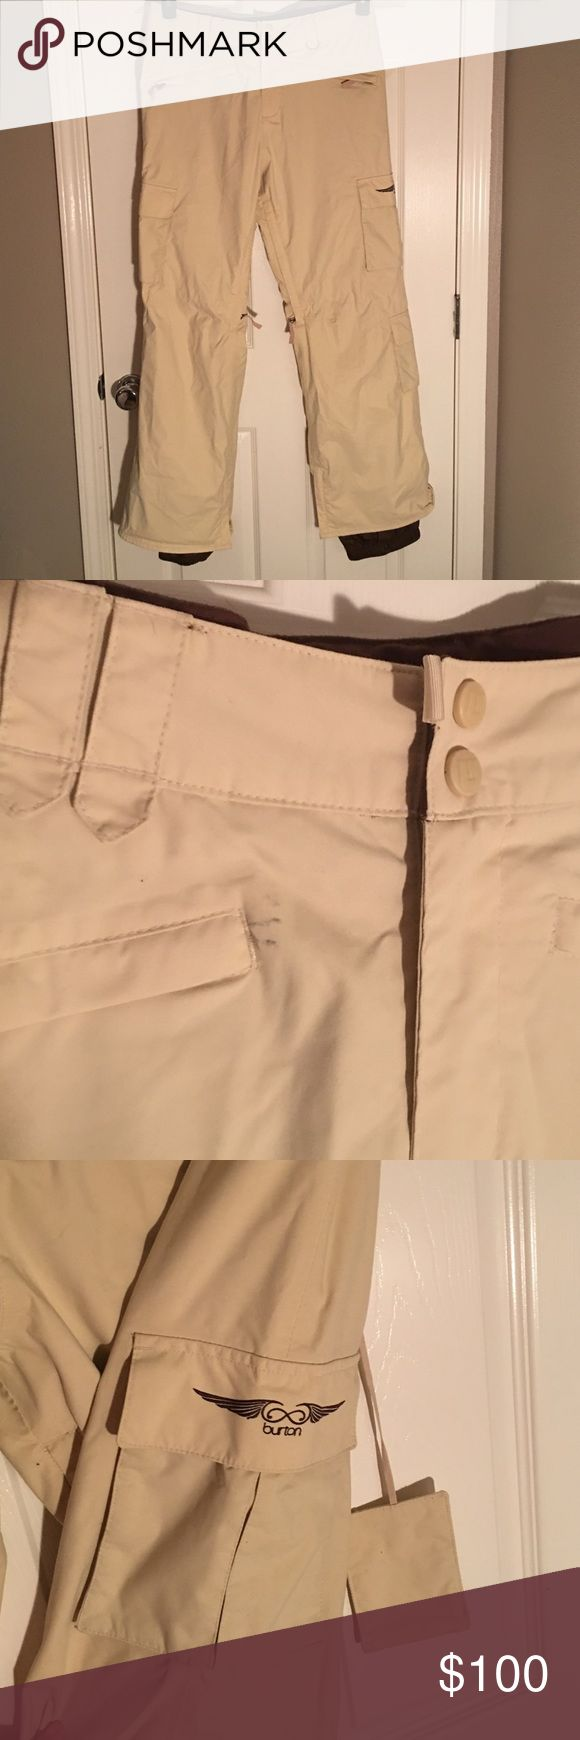 """Like new Burton snowboard pants These are in excellent condition aside form one small mark (shown in pic).  May come out with a wash.  Fully waterproof lined, zip vents and zippers to go over boots.  Multiple pockets and built in lift pass holder.  Please ask if any questions!  Make me an offer!  Inseam 31.3"""", waist 35"""". Burton Pants"""